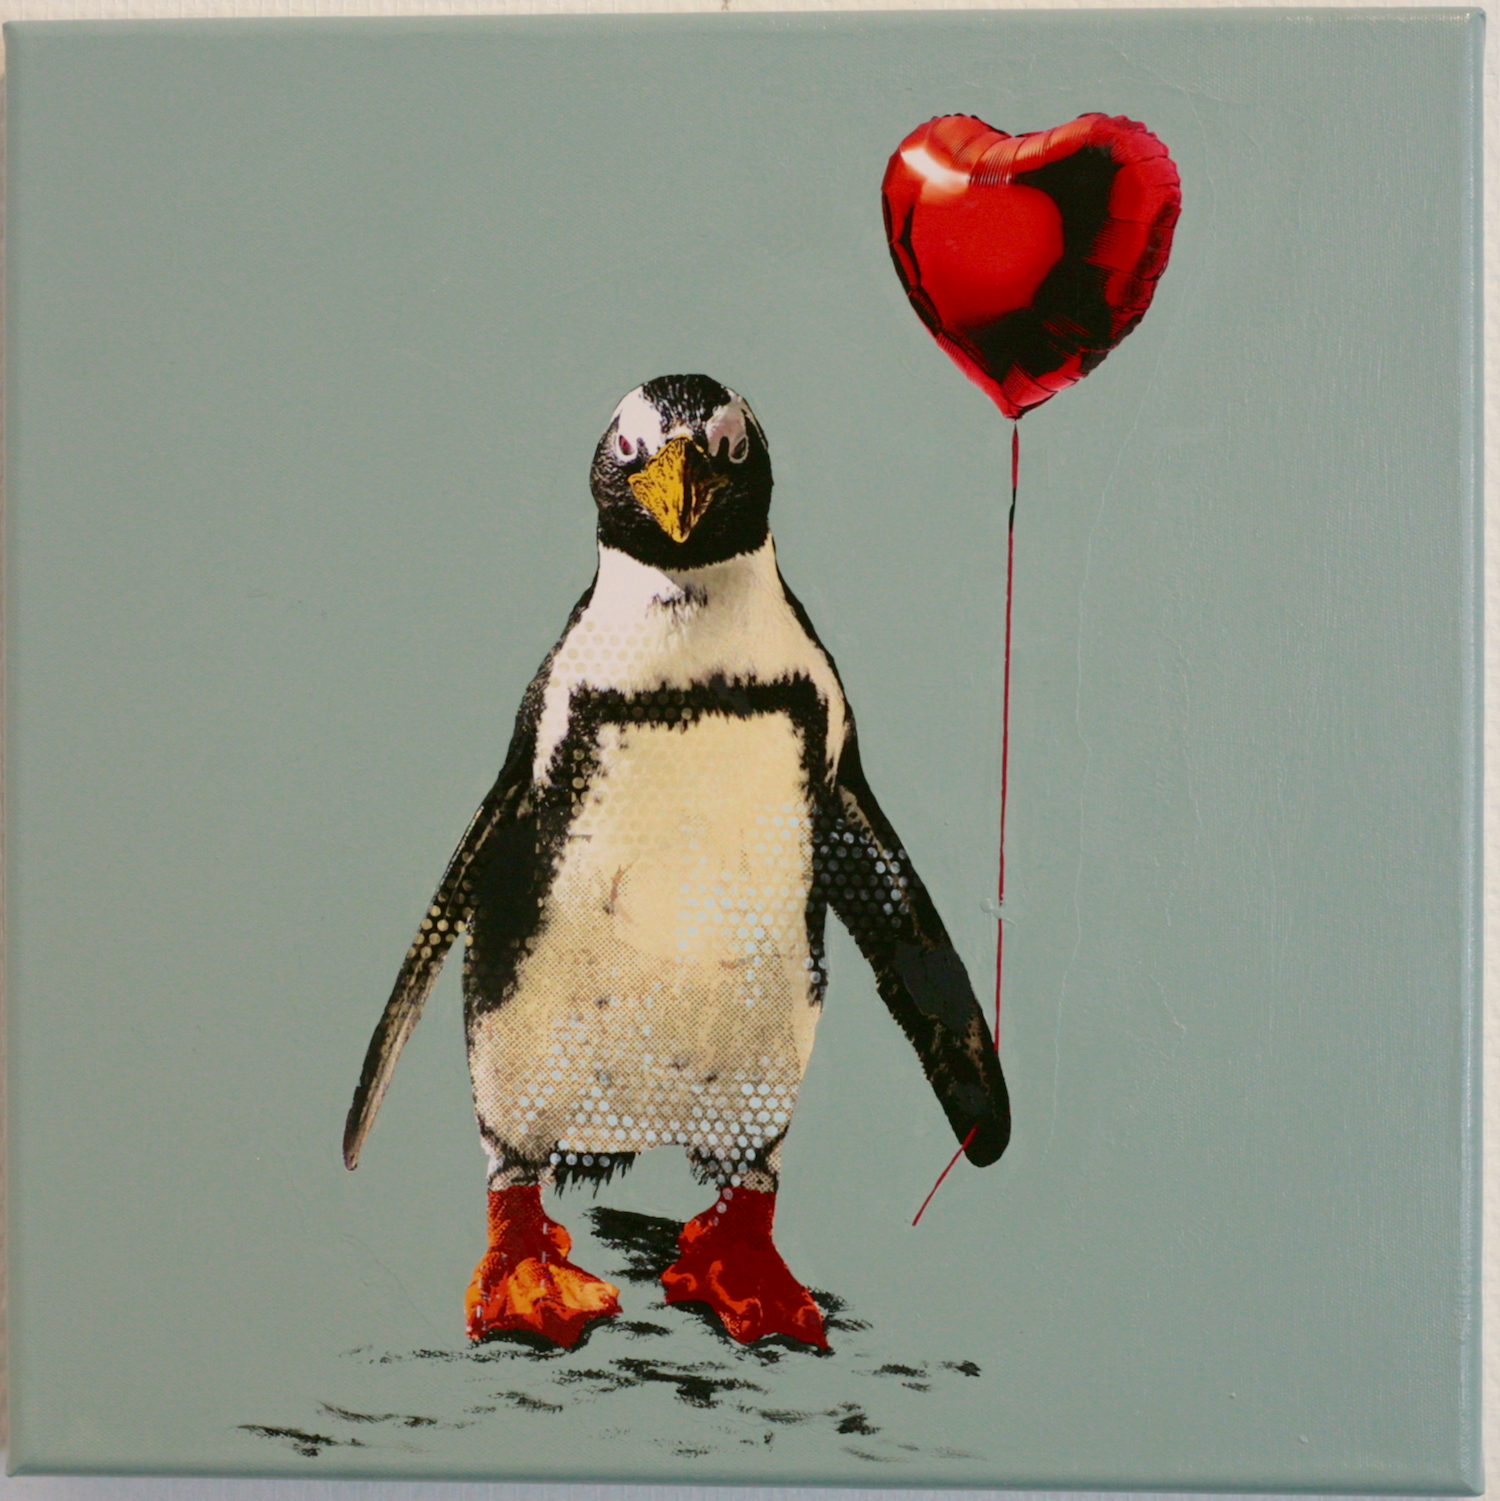 Robert Hilmersson - Love is in the air, oil on canvas